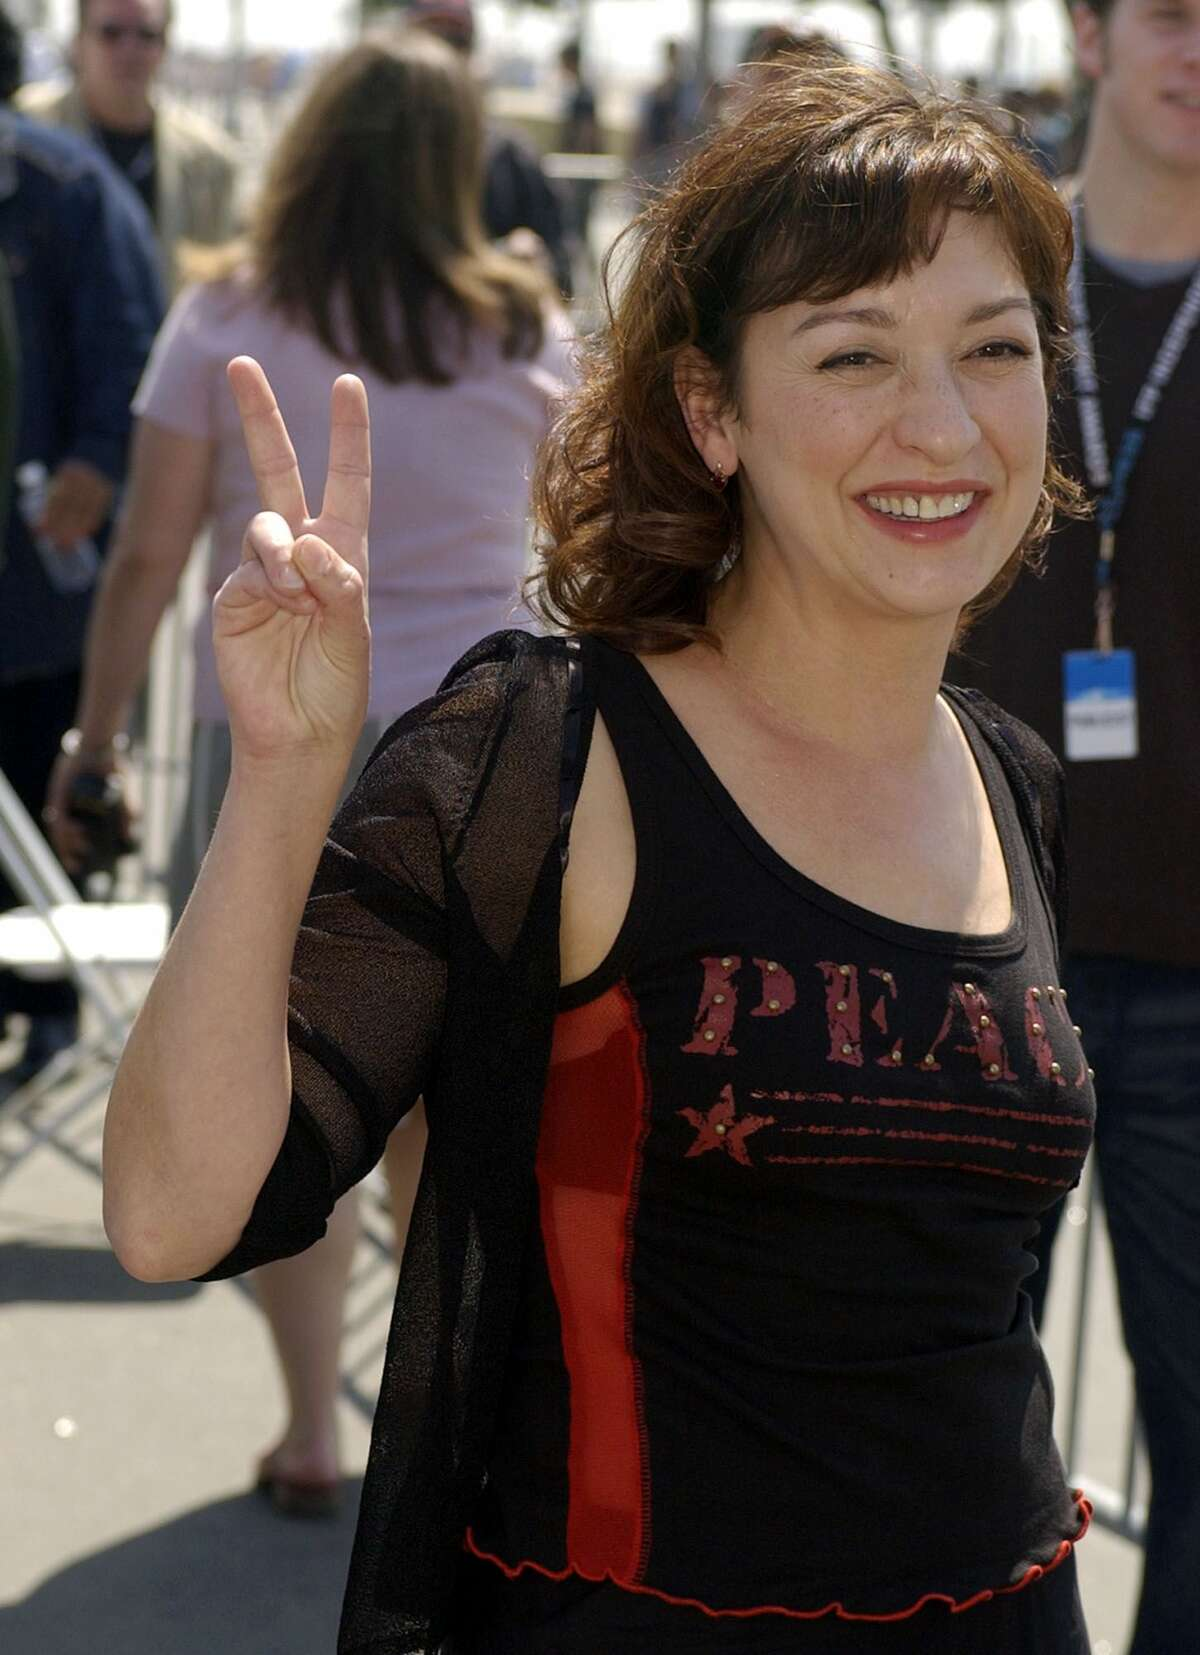 """FILE - In this March 22, 2003 file photo, actress Elizabeth Pena flashes a peace sign as she arrives for the 2003 IFP Independent Spirit Awards in Santa Monica, Calif. The """"La Bamba"""" and """"Lone Star"""" actress Pena, 55, has died. Pena's manager, Gina Rugolo, said the actress died Tuesday, Oct. 14, 2014, in Los Angeles of natural causes after a brief illness. (AP Photo/Mark J. Terrill, file)(AP Photo/Chris Pizzello, file)"""